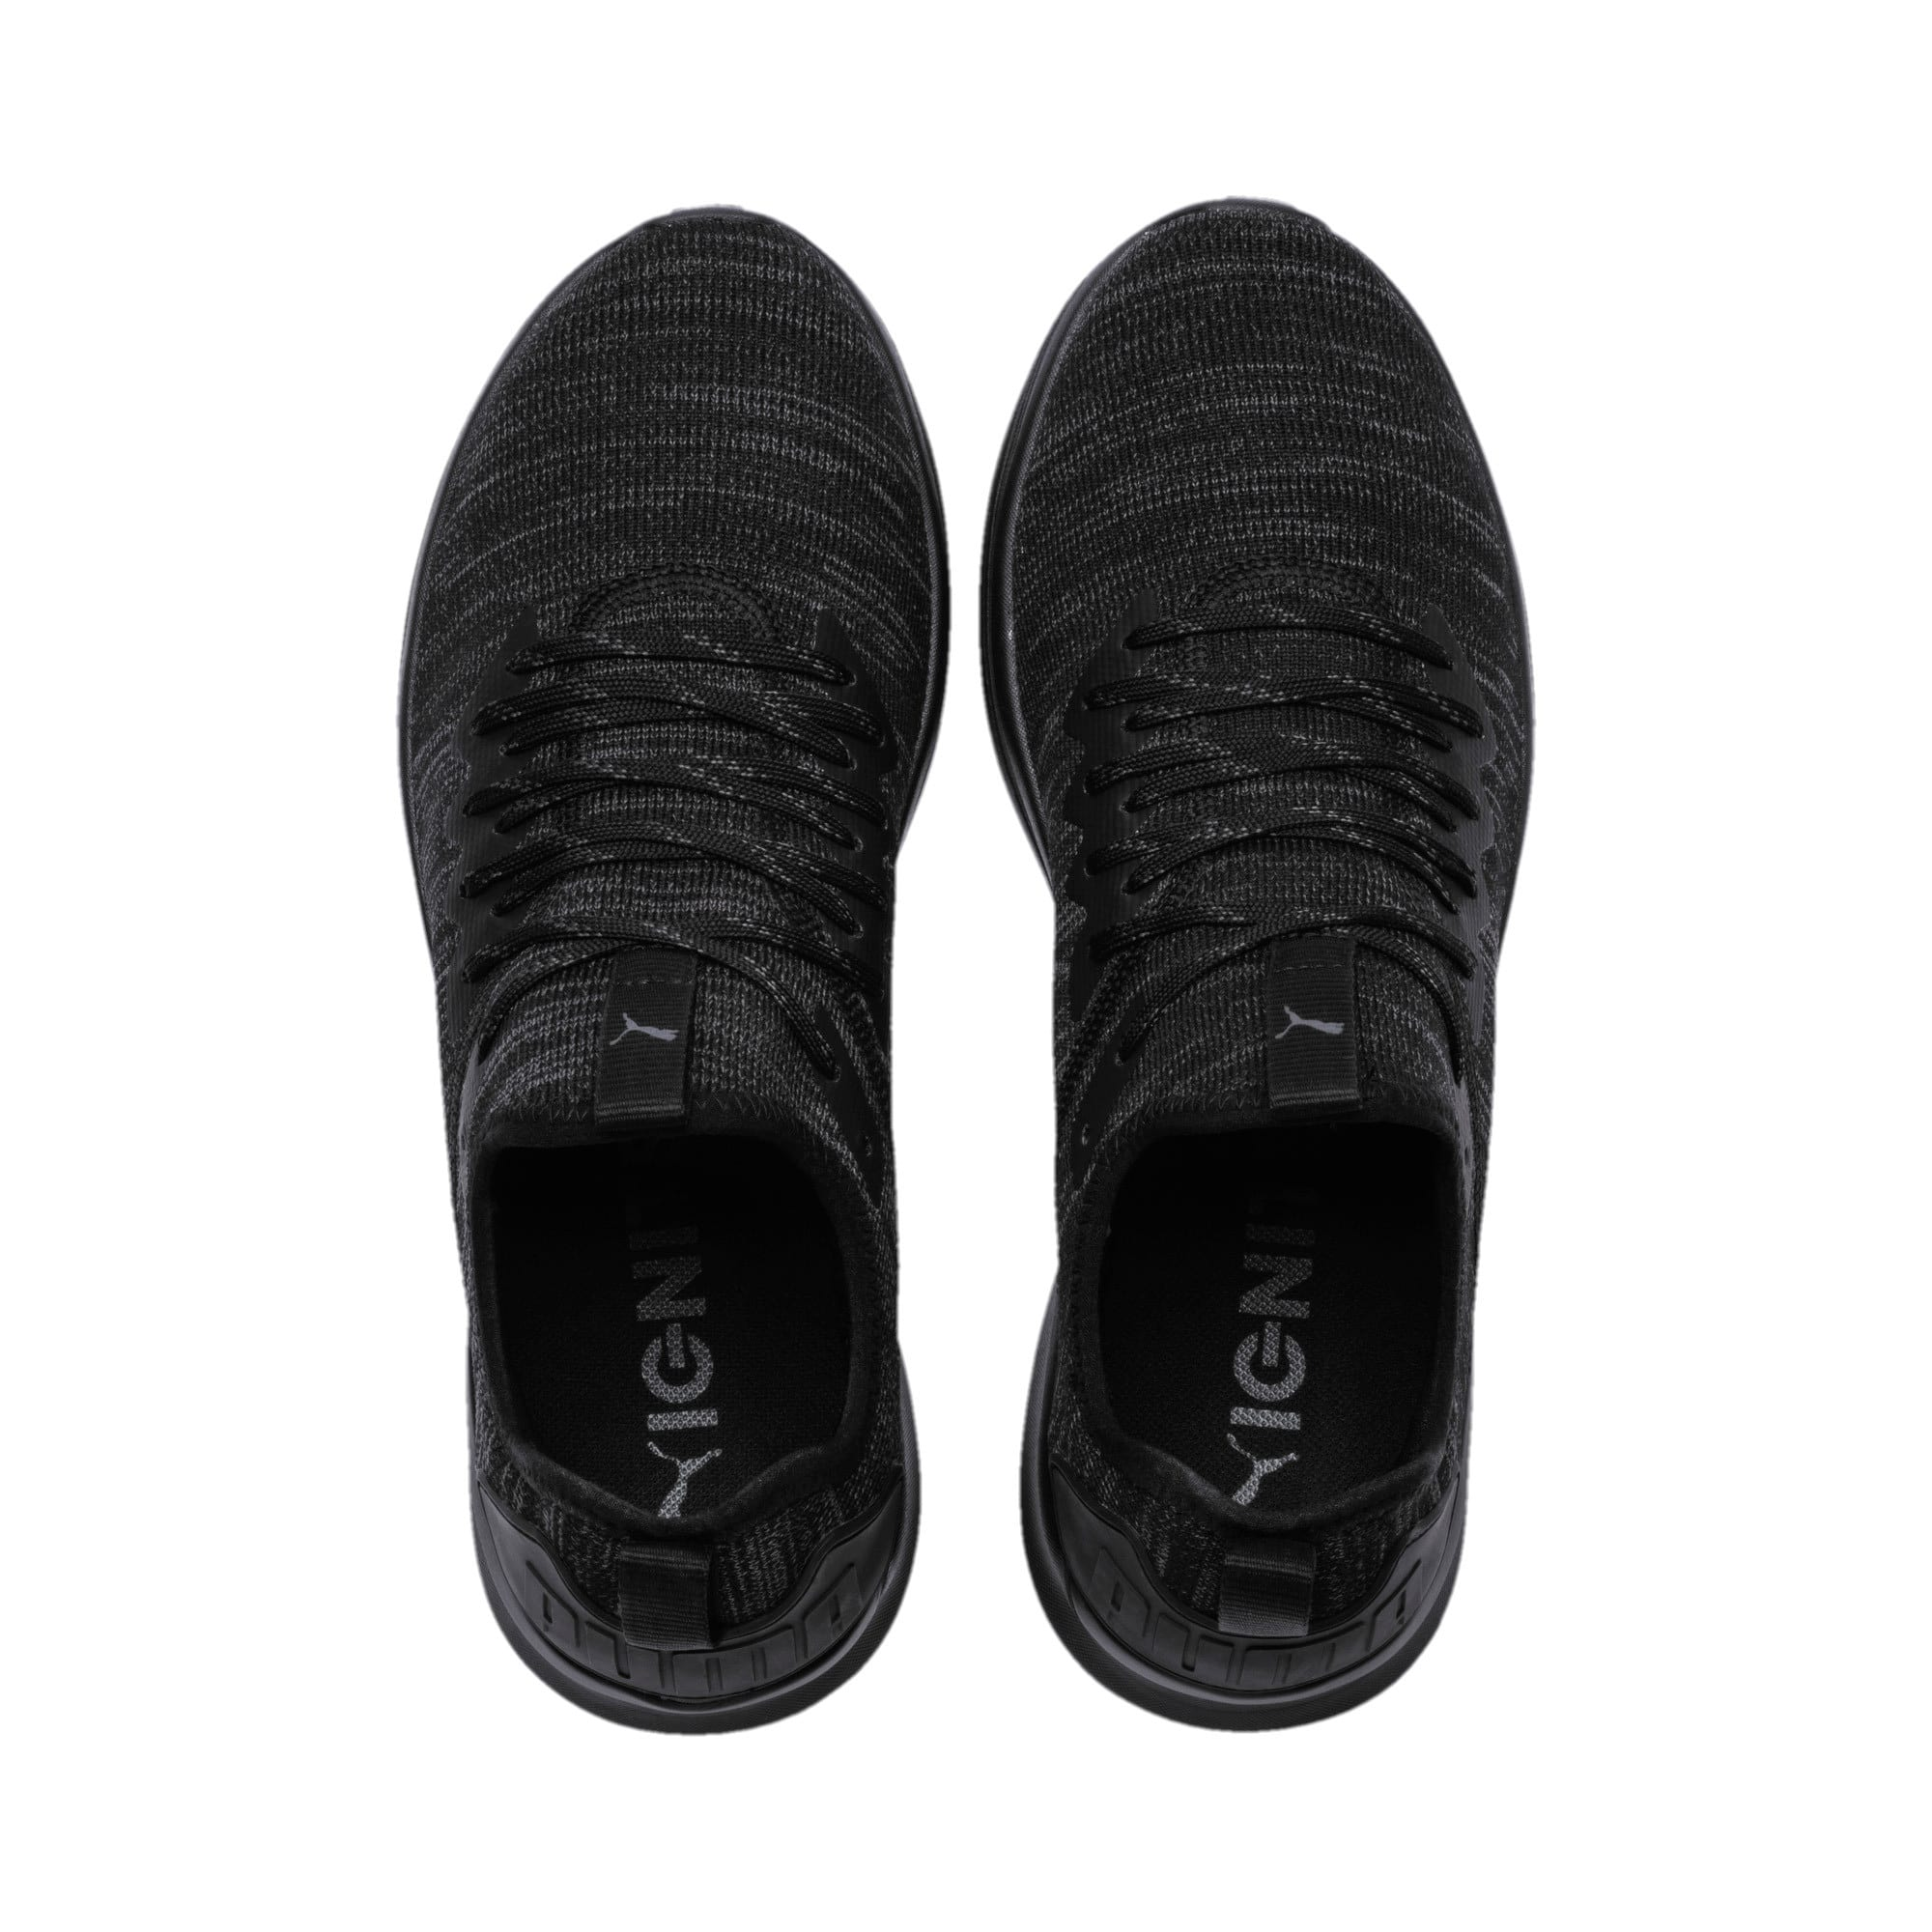 Thumbnail 6 of IGNITE Flash evoKNIT Herren Sneaker, Puma Black, medium